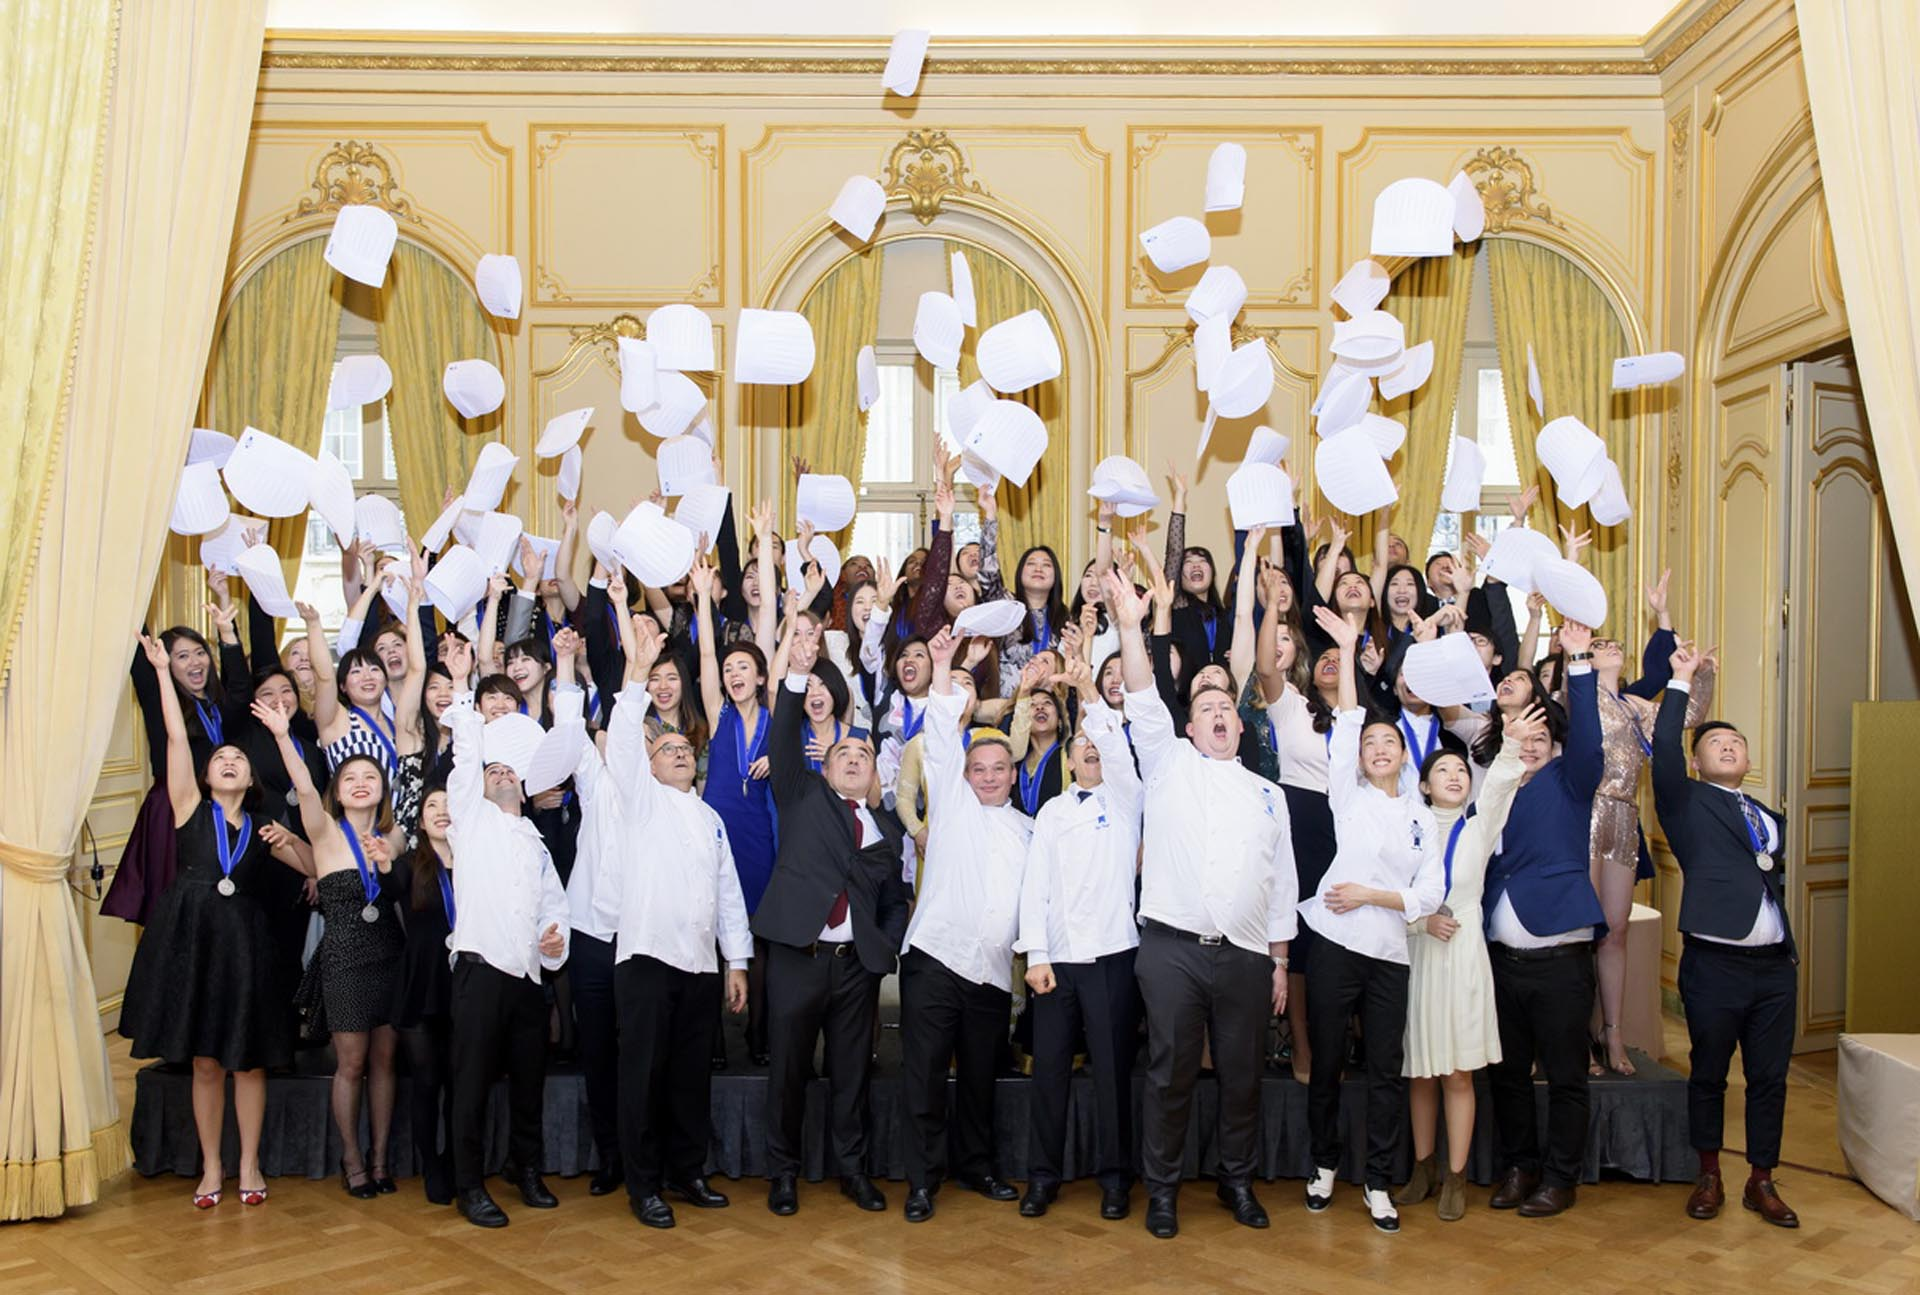 culinary arts graduation ceremony Le Cordon Bleu Paris